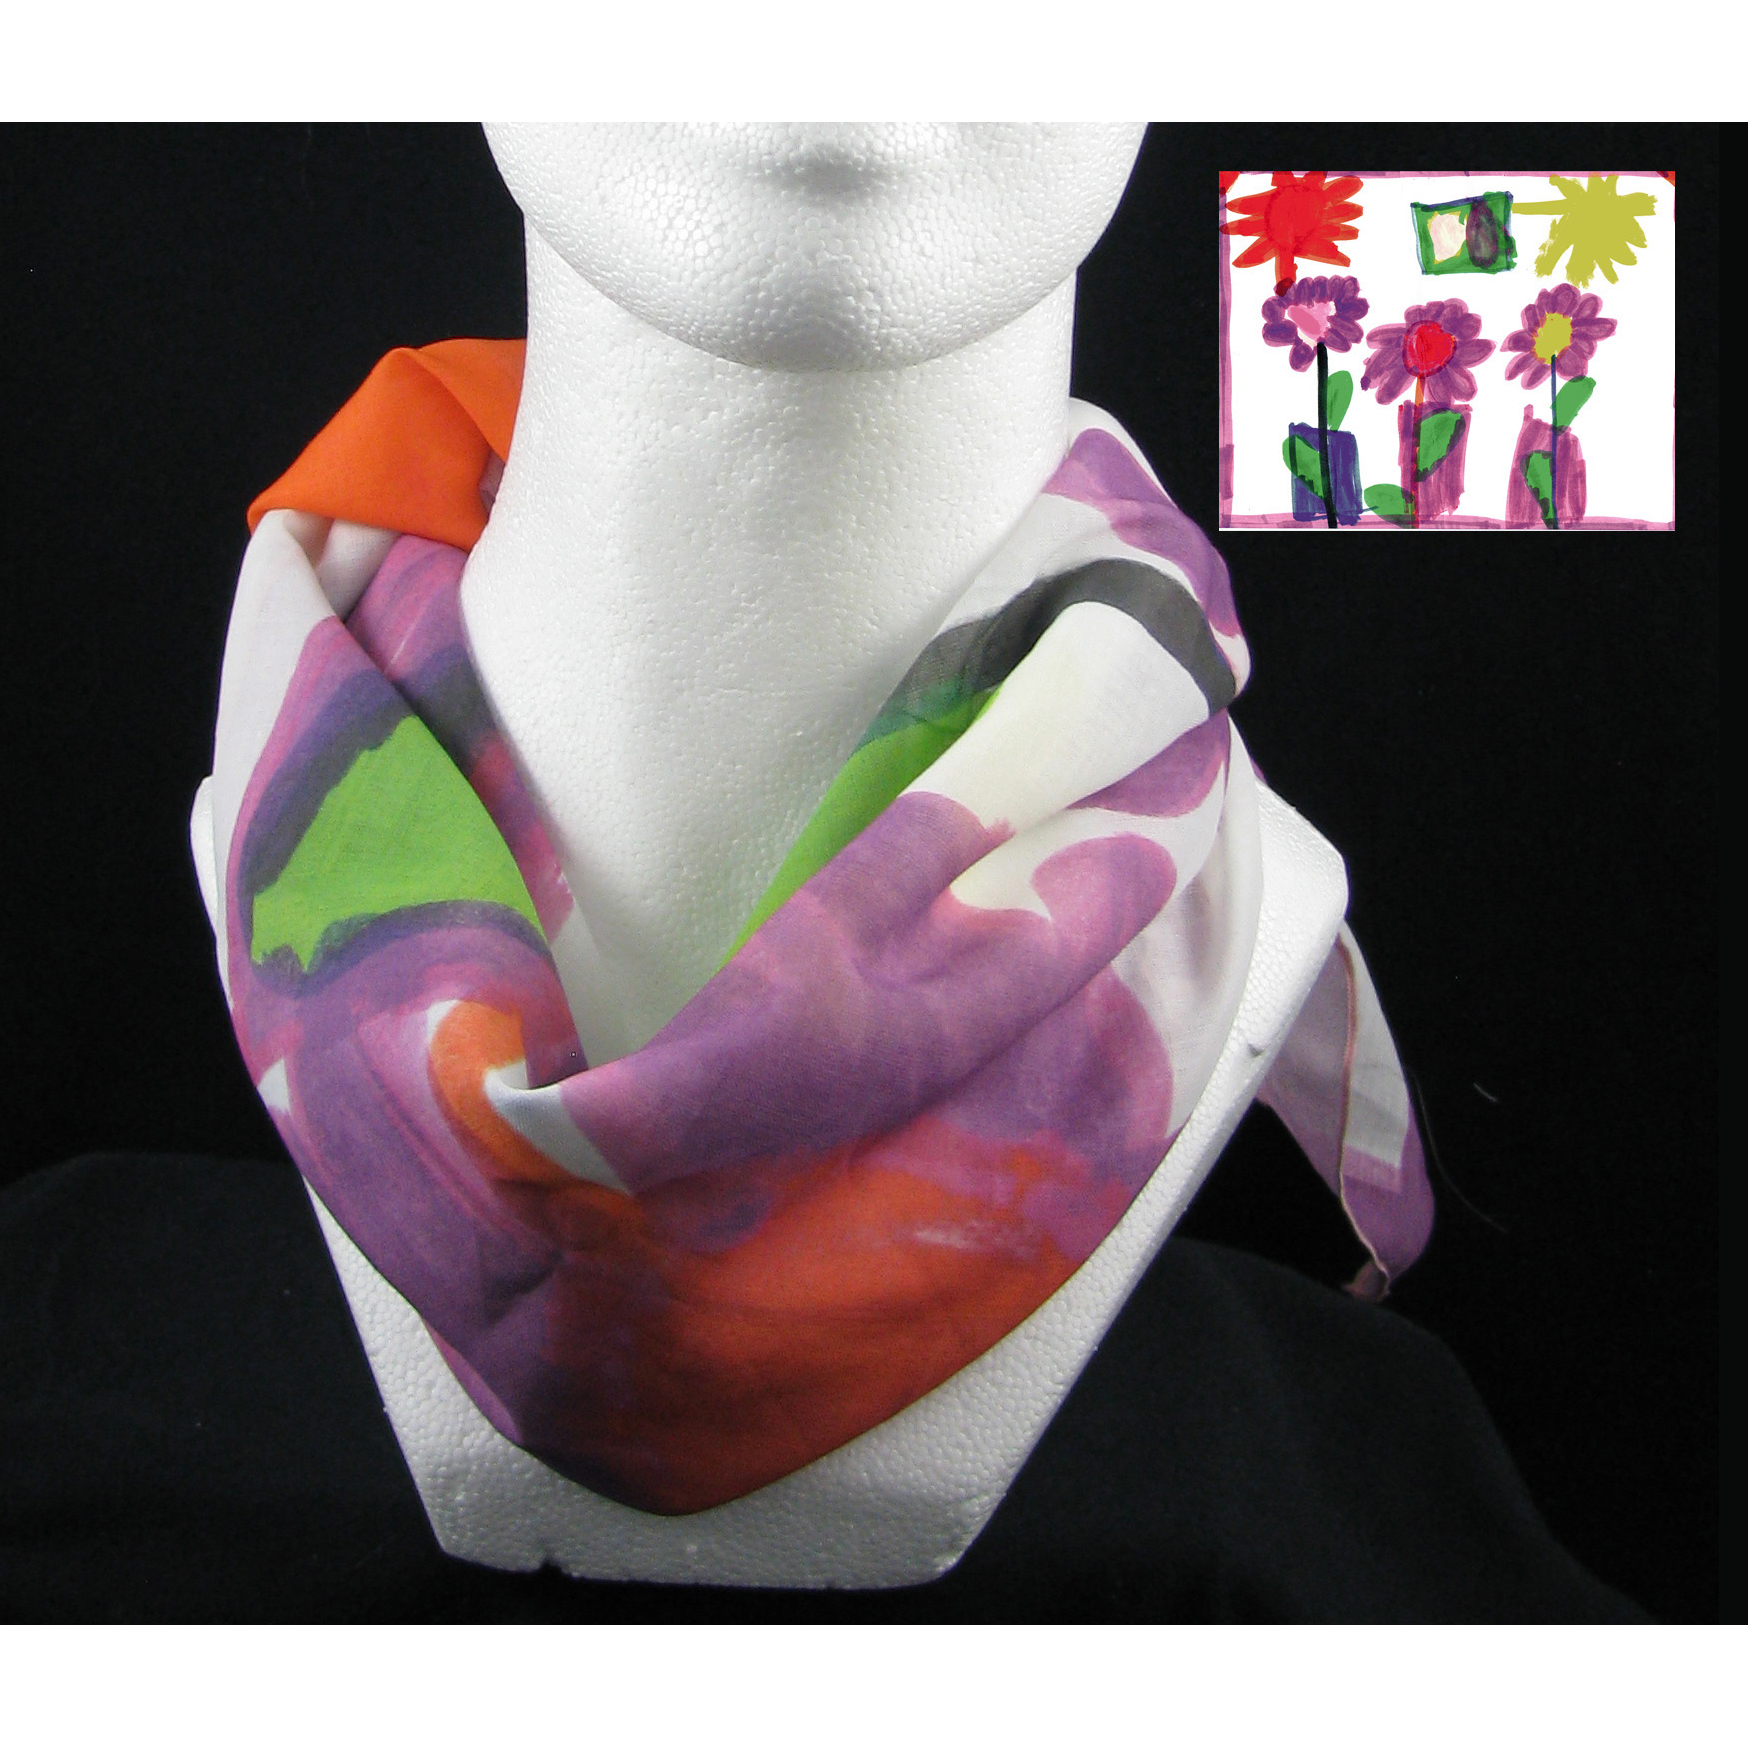 Children's art on a square scarf